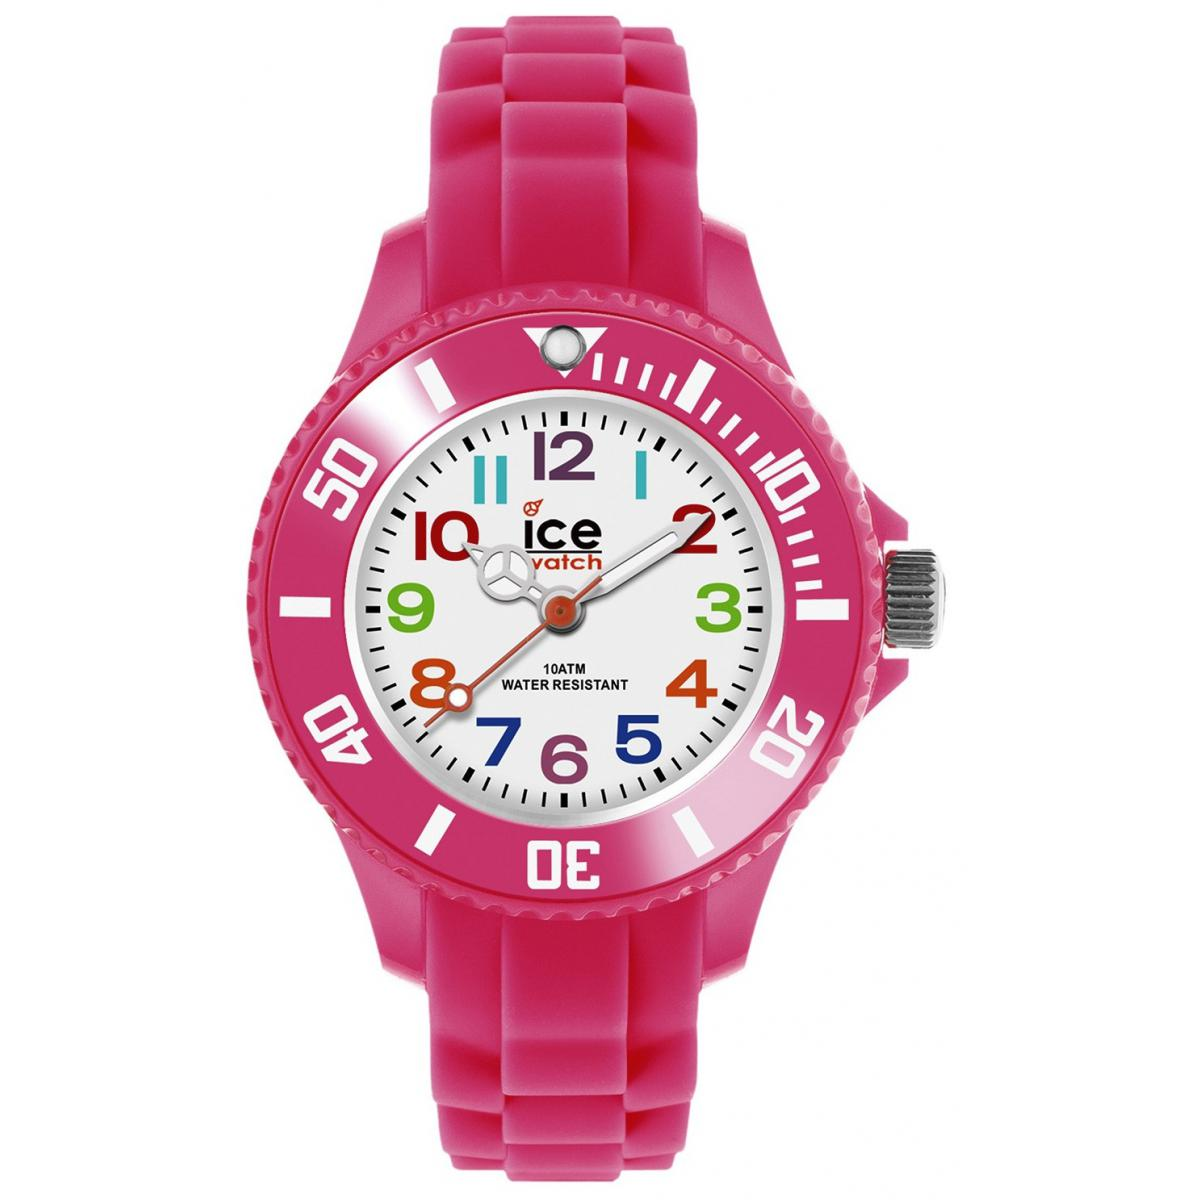 Montre Ice Watch Ice-Mini MN.PK.M.S.12 - Montre Enfant Rose Fluo Silicone